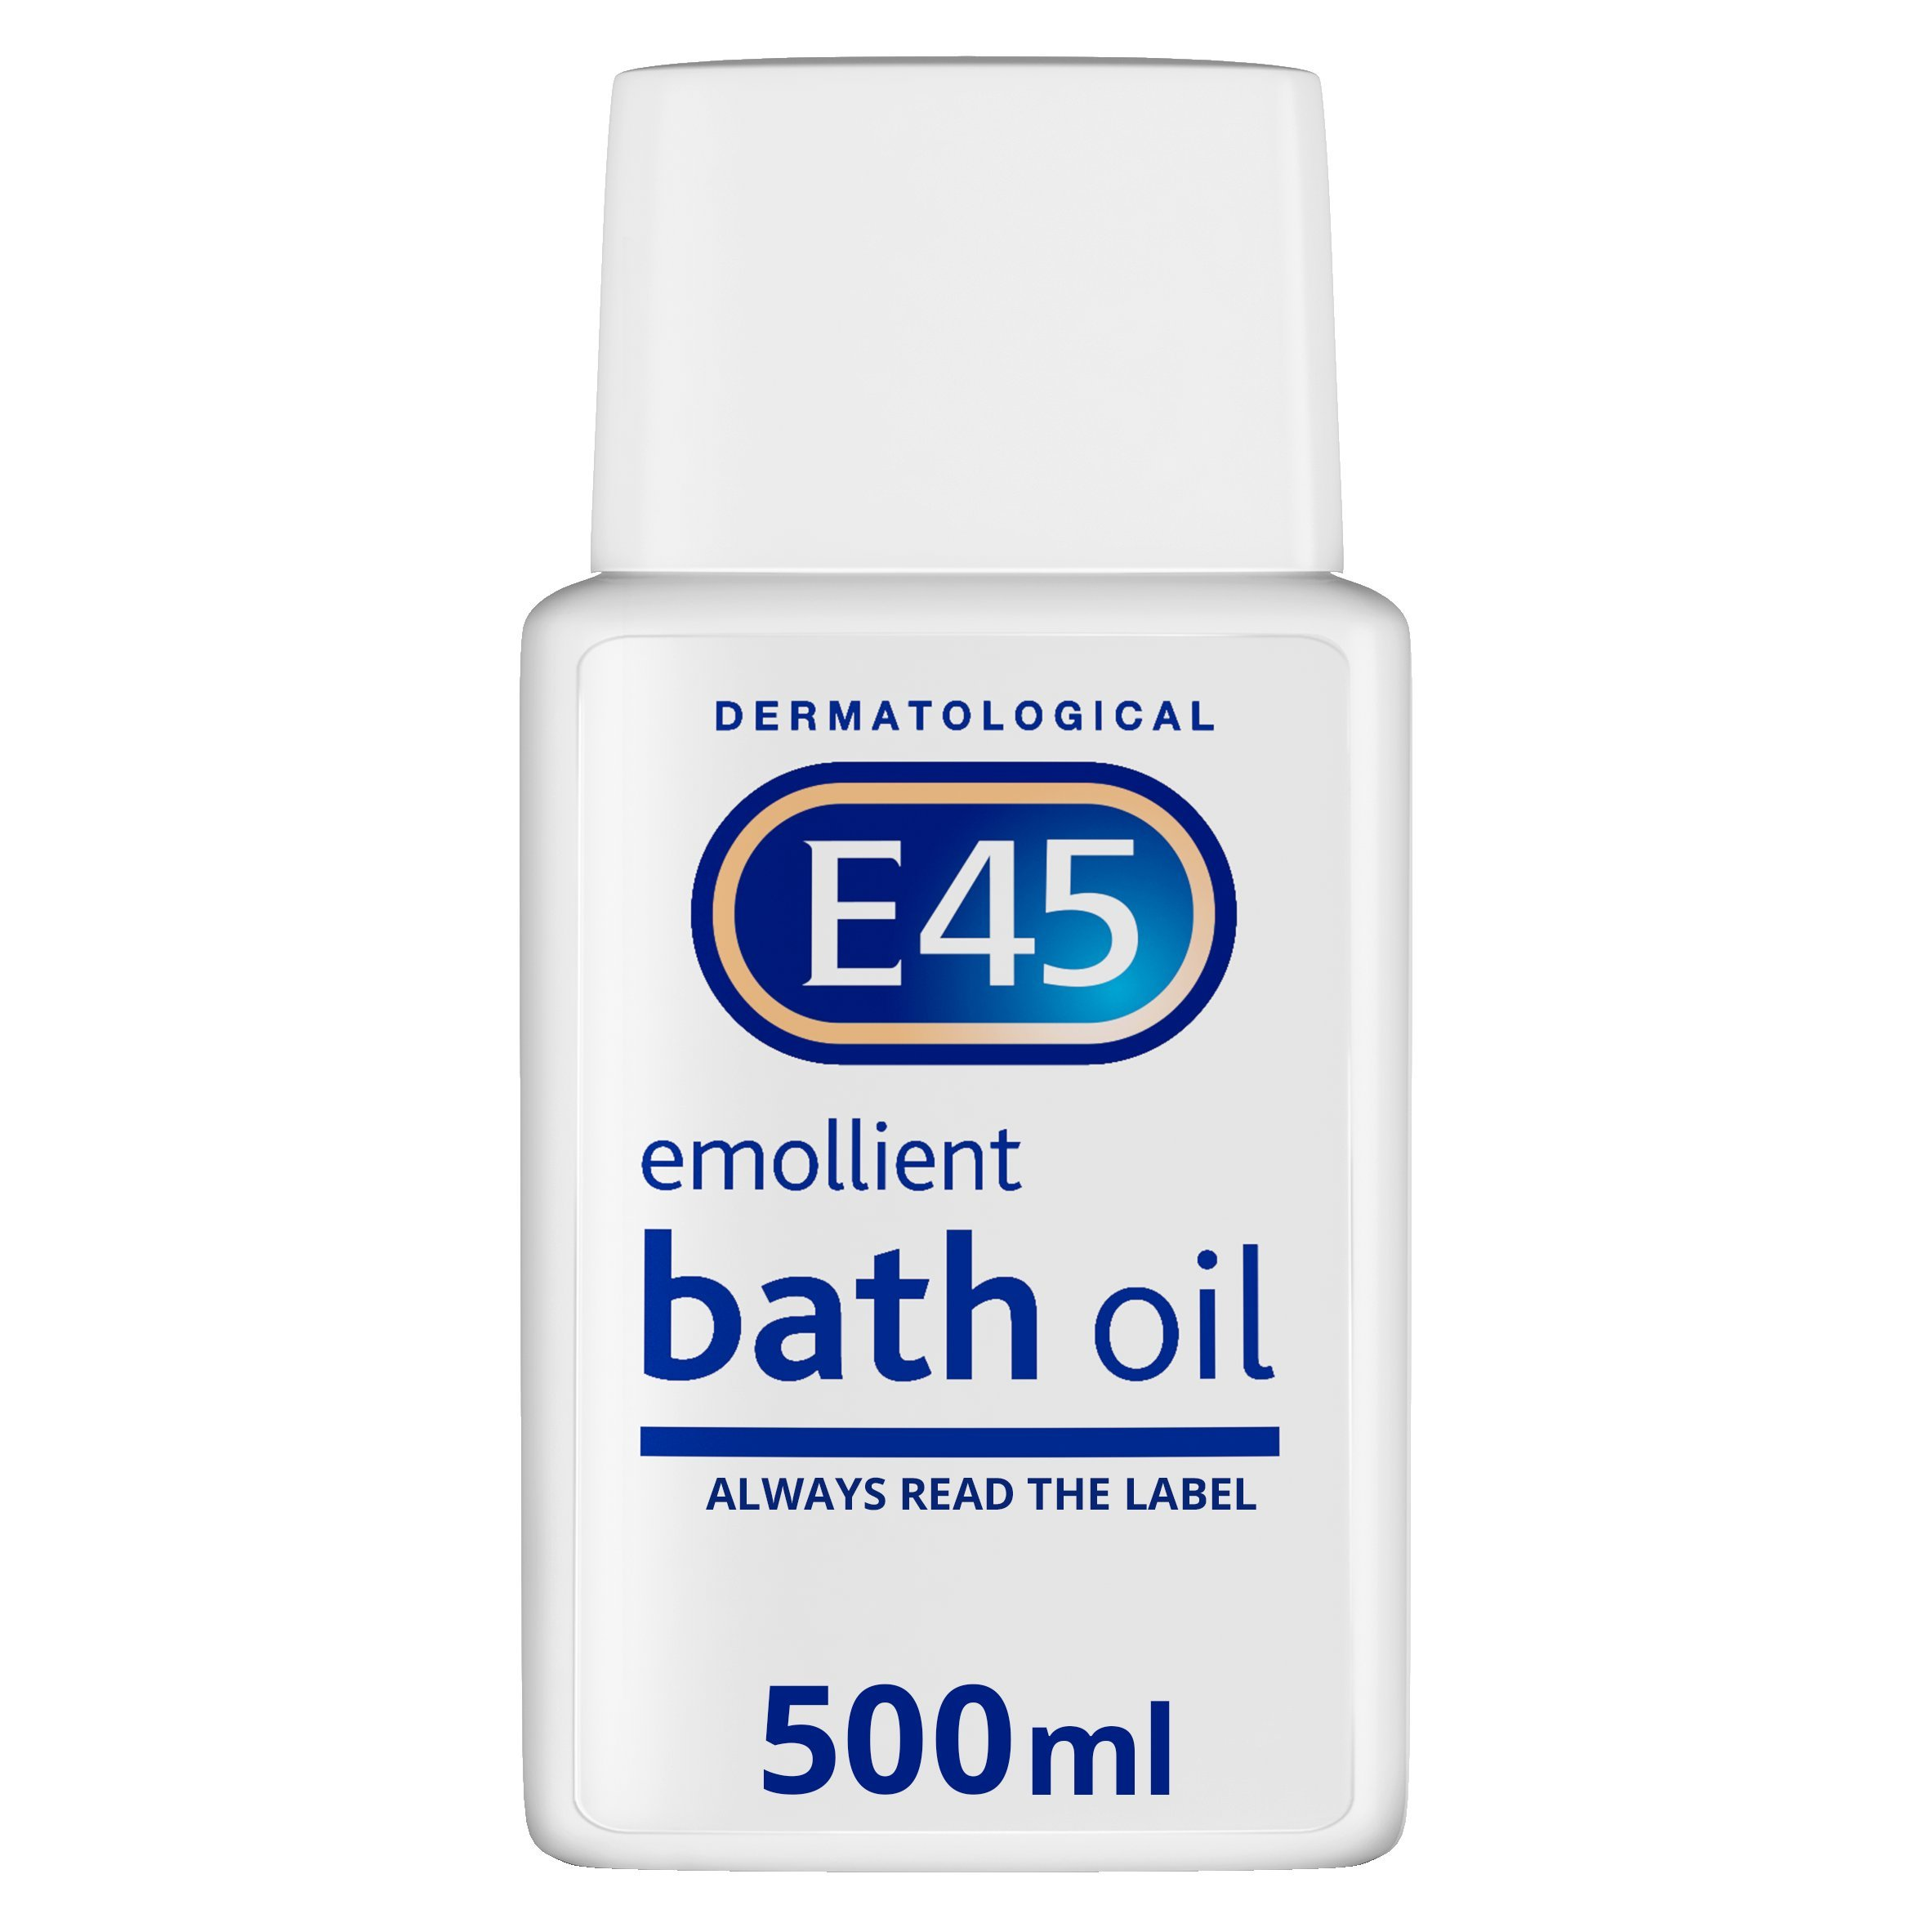 E45 Dermatological Emollient Bath Oil, 500 ml